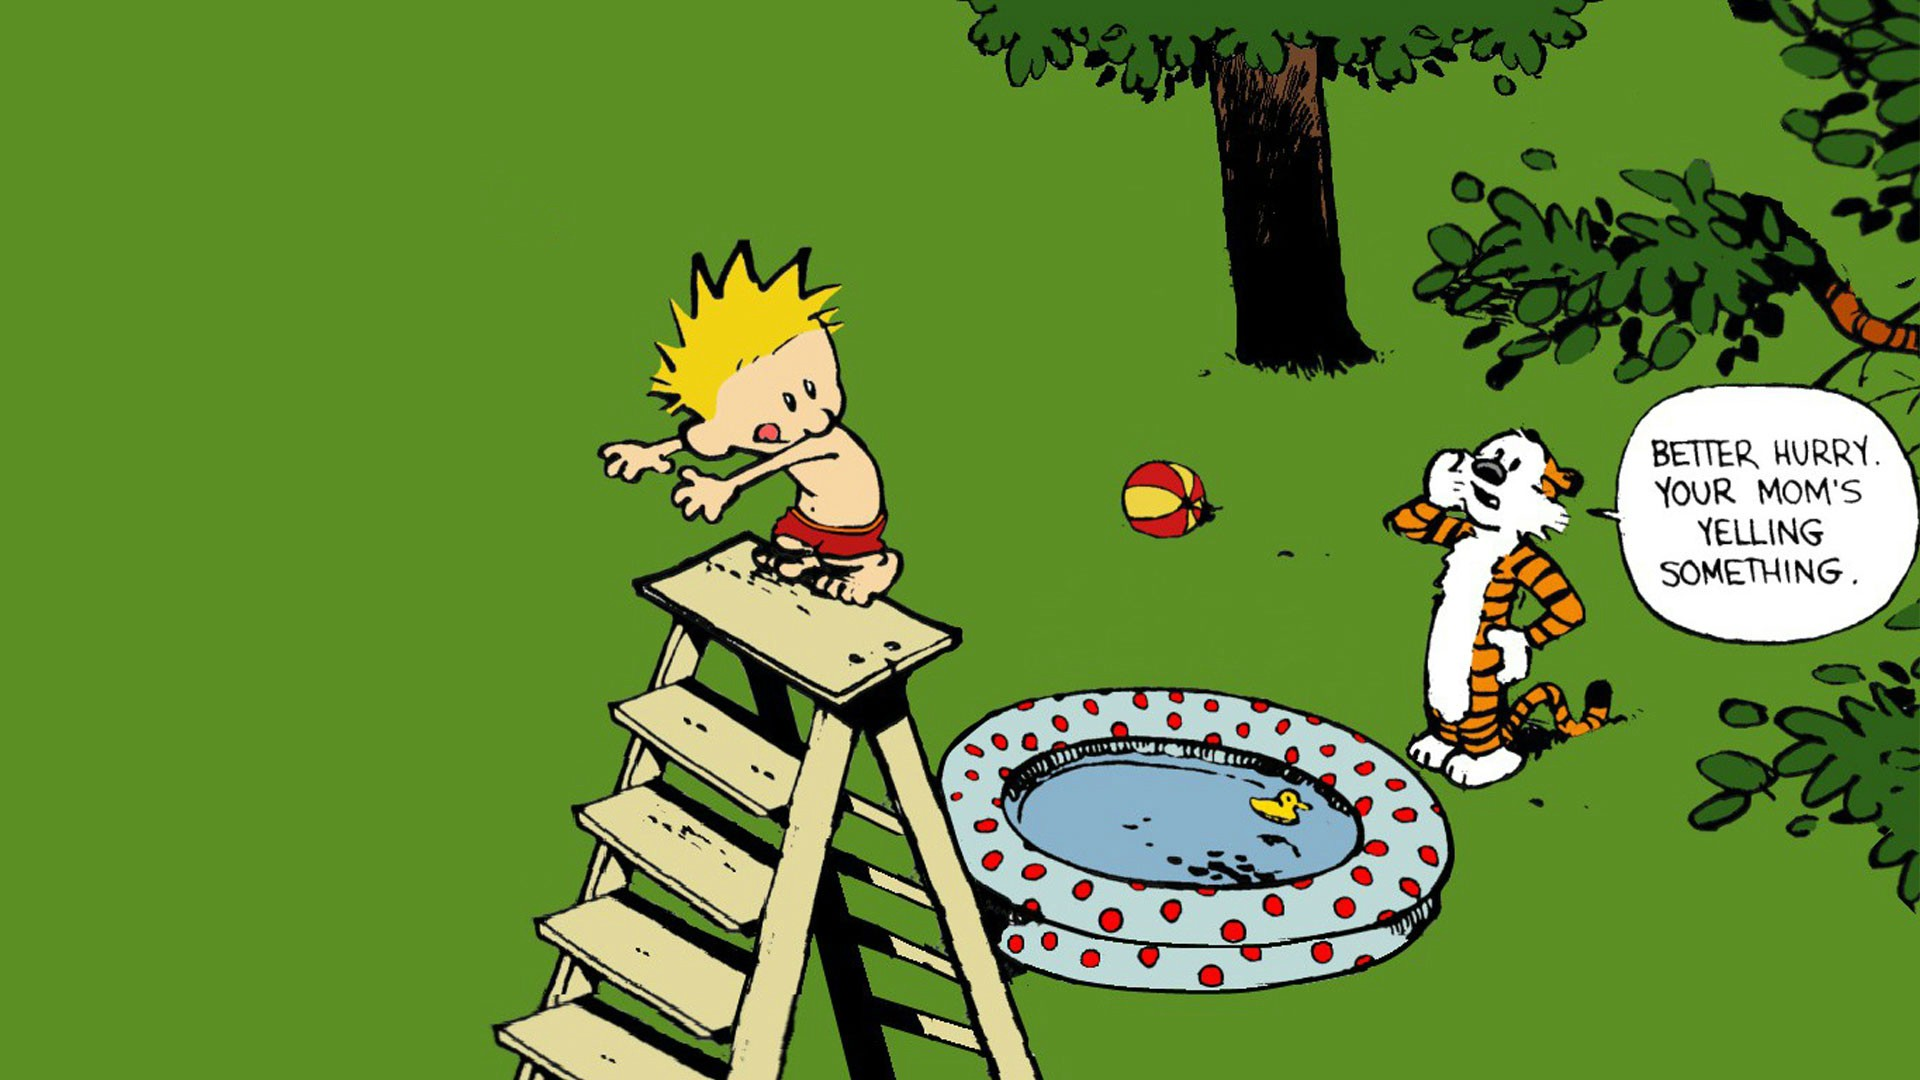 Calvin-and-Hobbes-by-Bill-Watterson-wallpaper-wp3403690